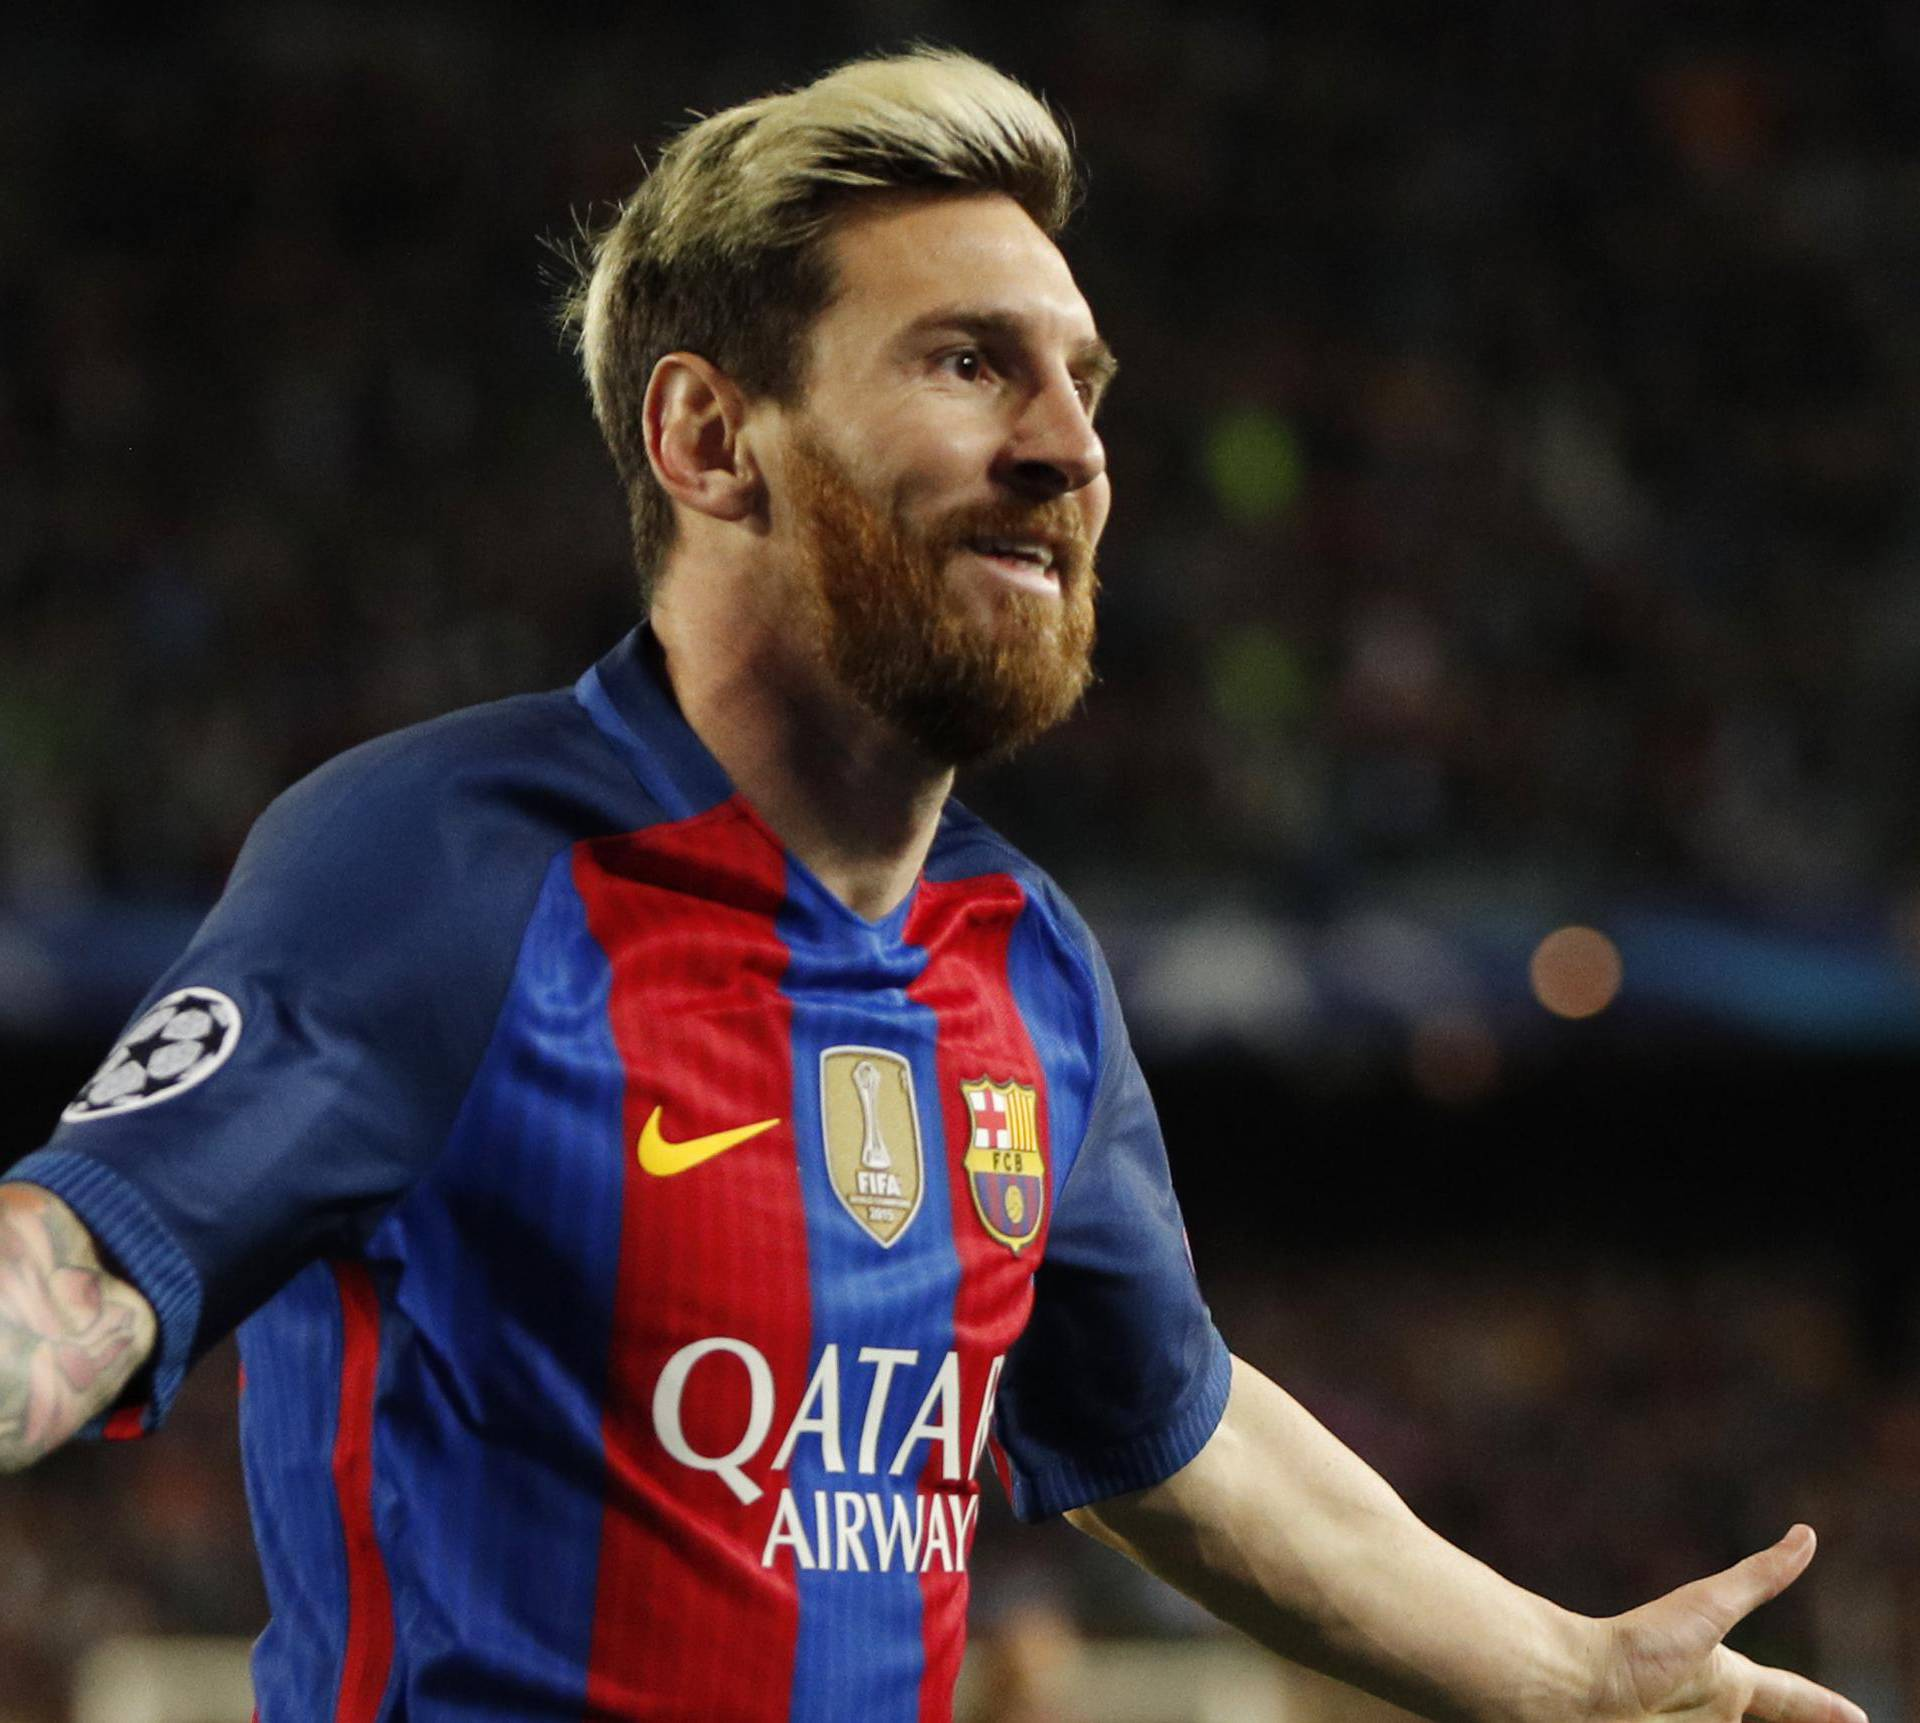 FC Barcelona v Manchester City - UEFA Champions League Group Stage - Group C